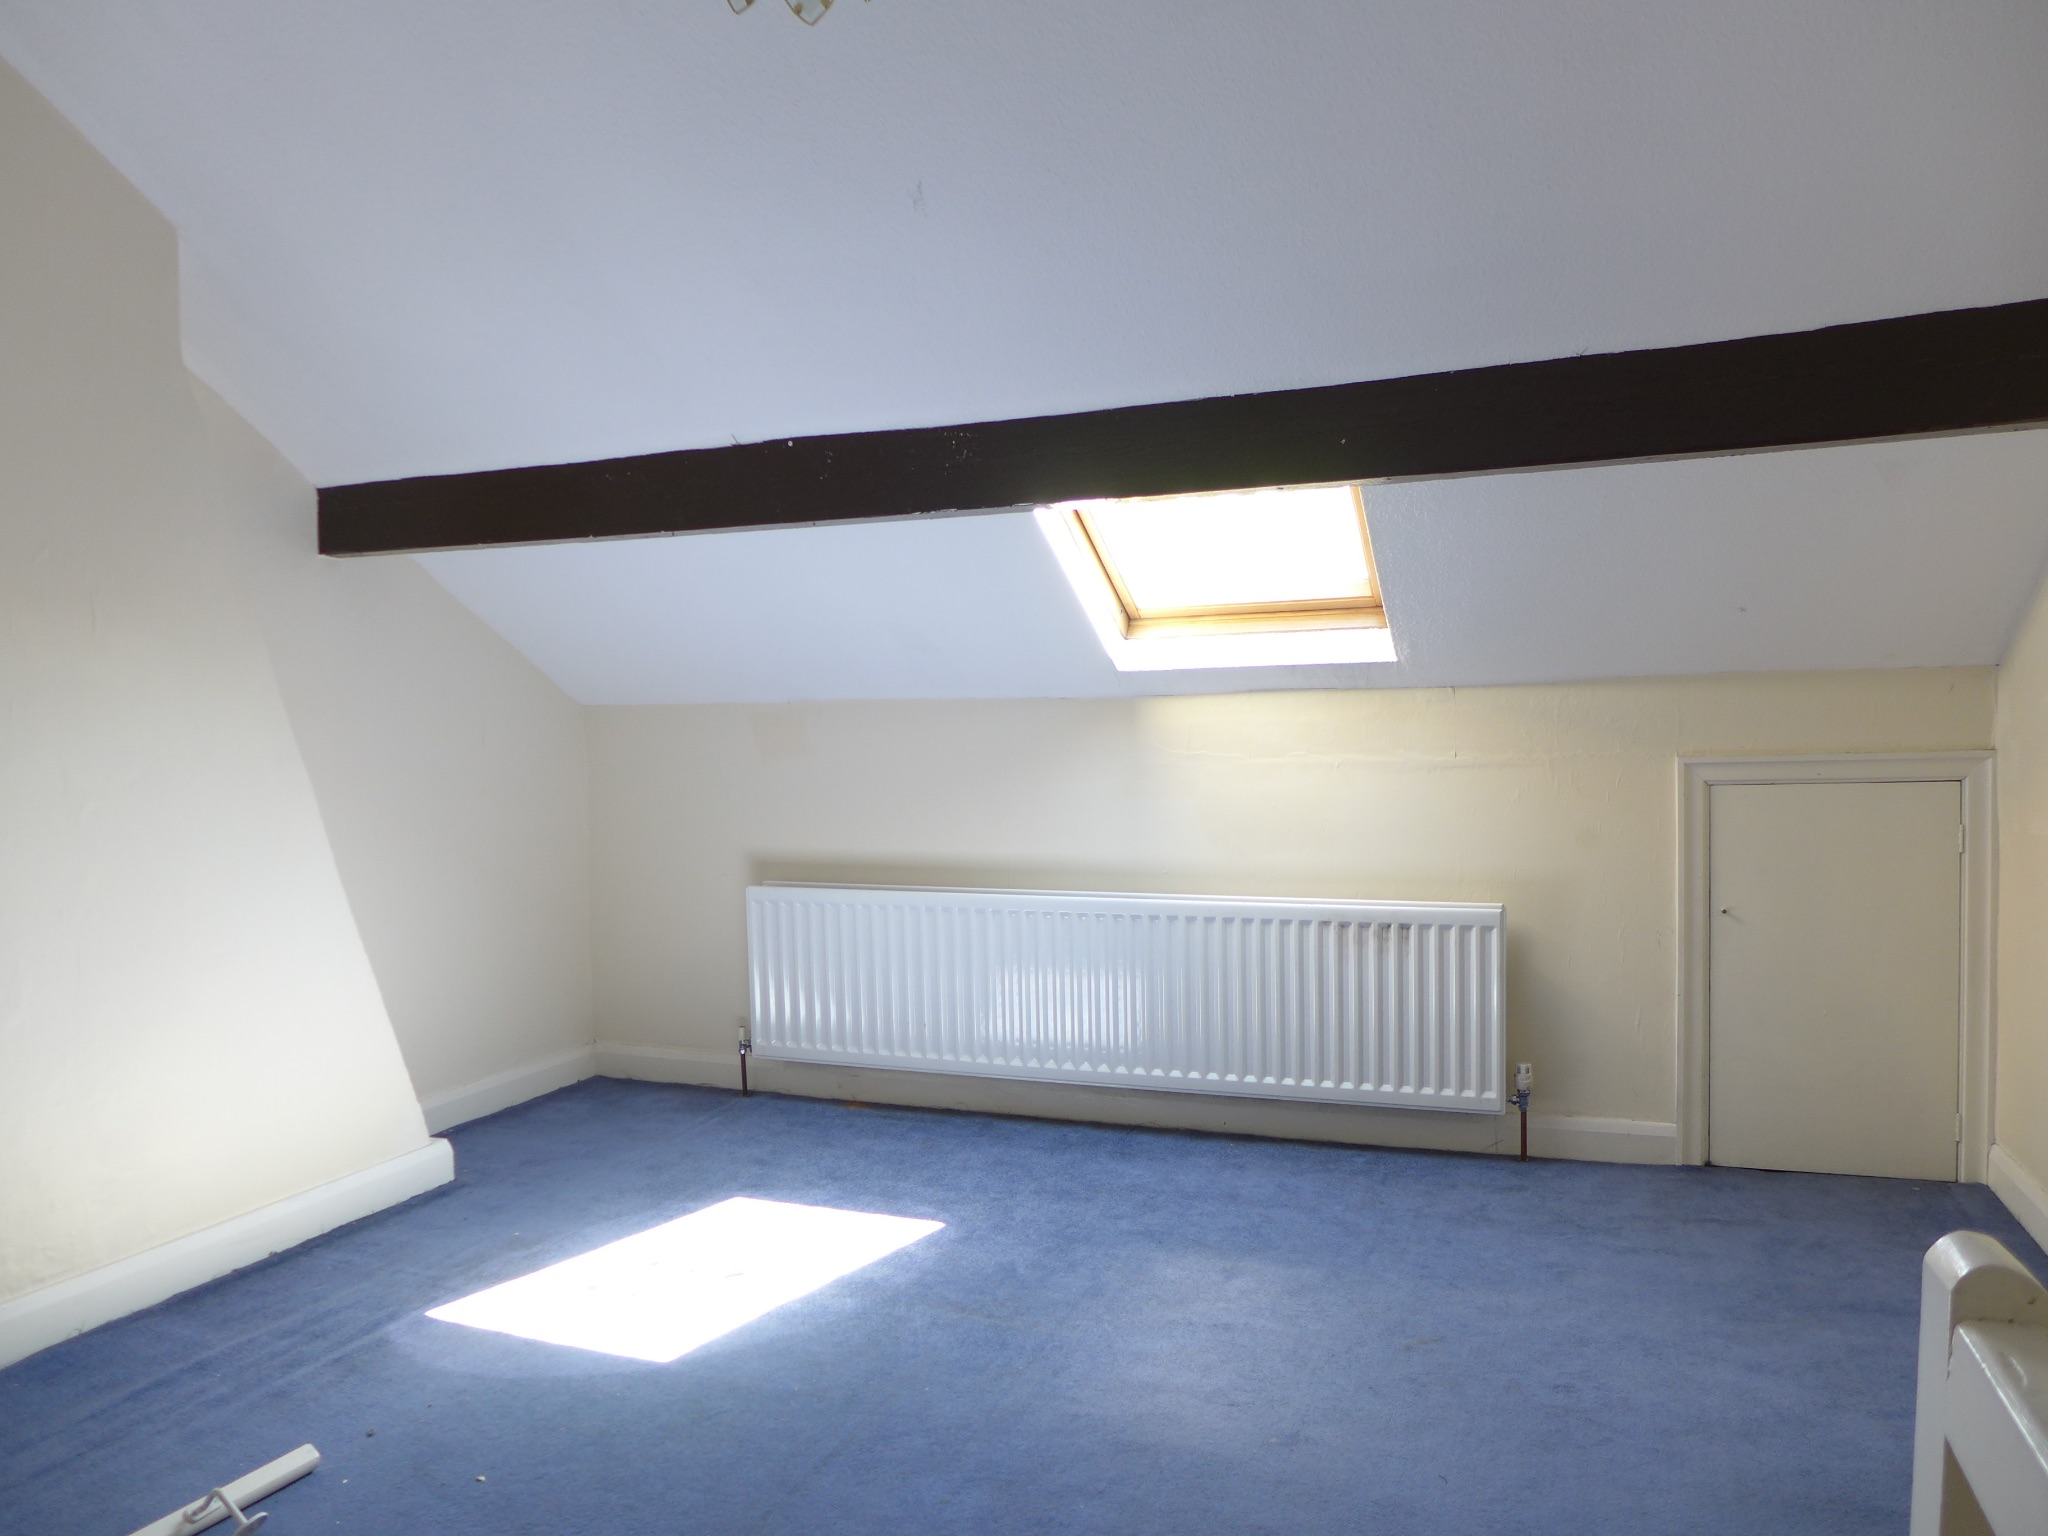 3 bedroom mid terraced house For Sale in Todmorden - Photograph 9.